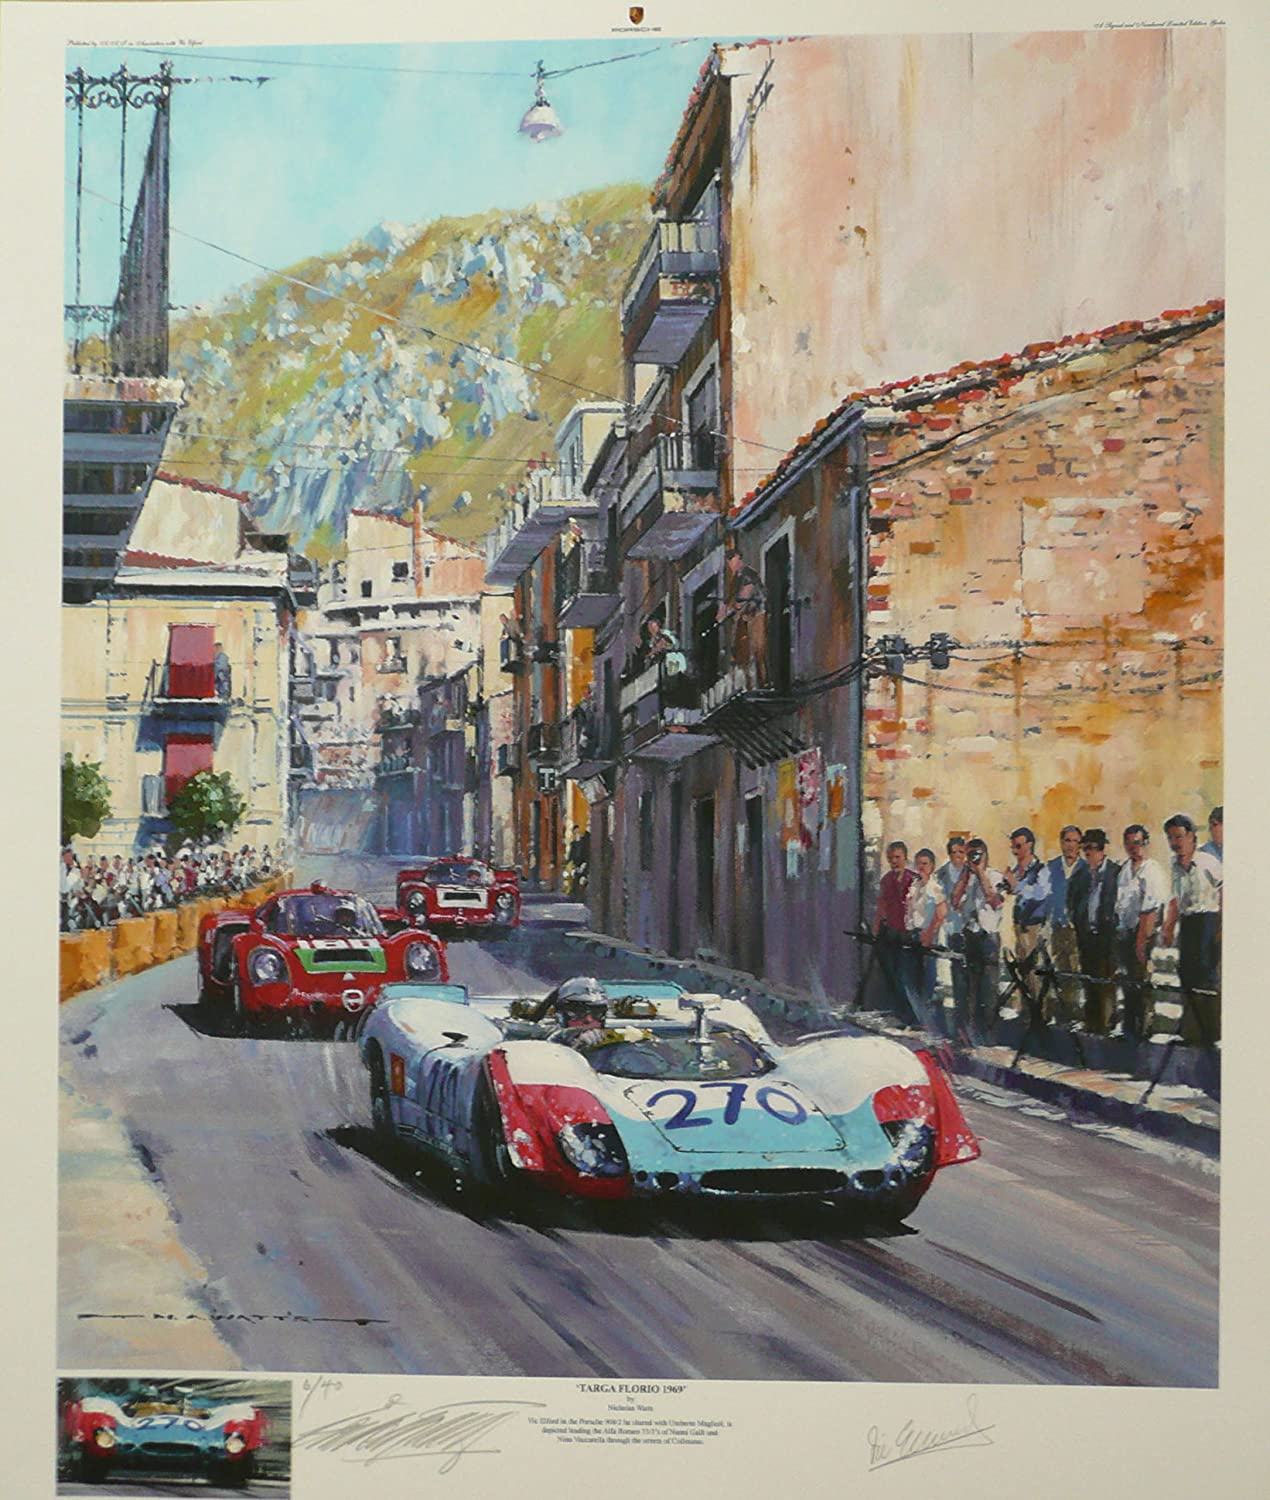 "Porsche 908/2 leads Alfa Romeo 33/3 Vic Elford ""Targa Florio 1969"" Art Giclee Print By Nicholas Watts Giclee - Autographed By Vic Elford & the Artist. Limited Edition of 40"